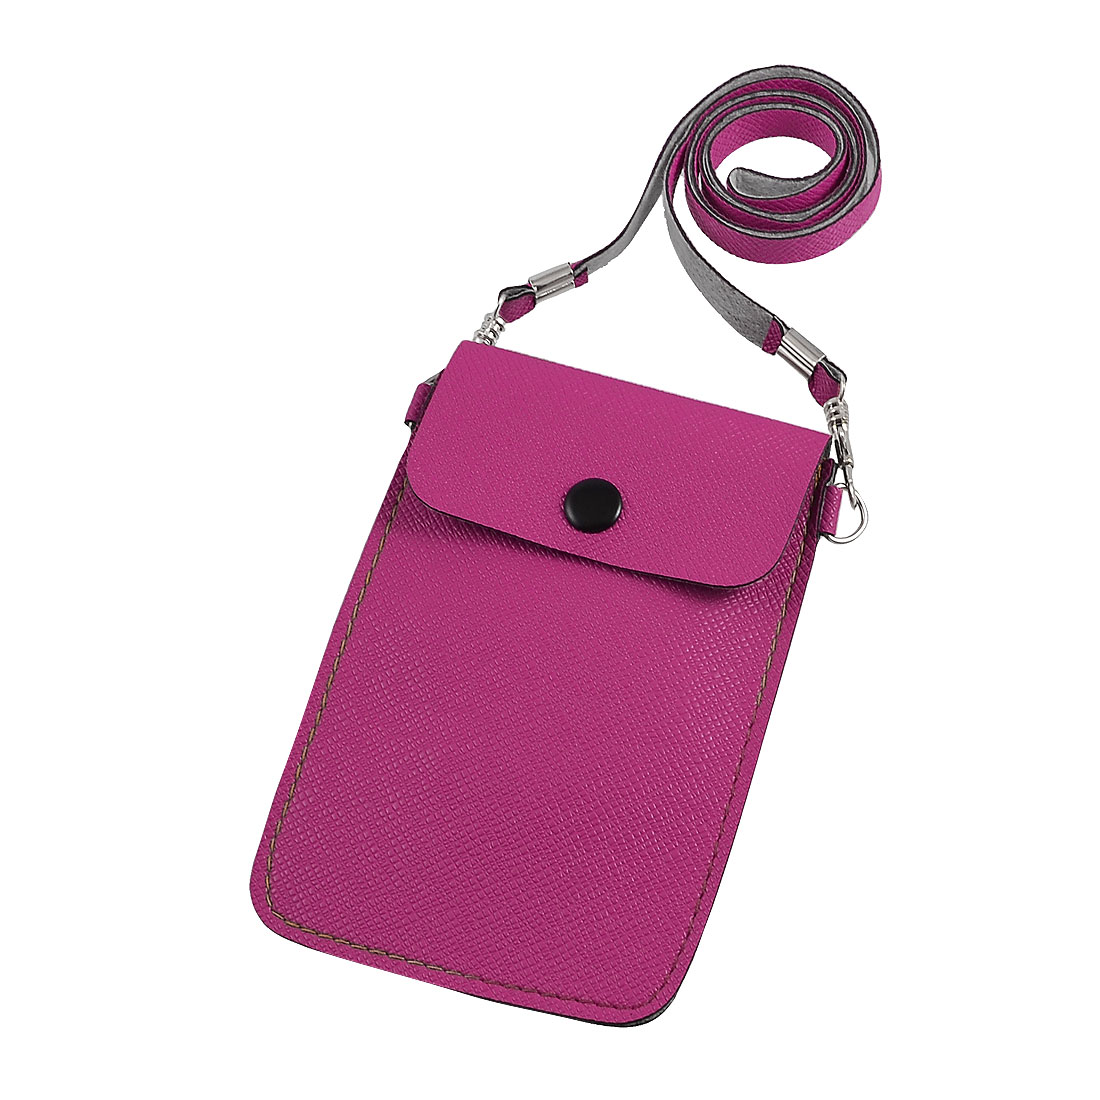 Fuchsia Rectangle PVC Faux Leather Pouch Bag for Cell Phone Mp3 MP4